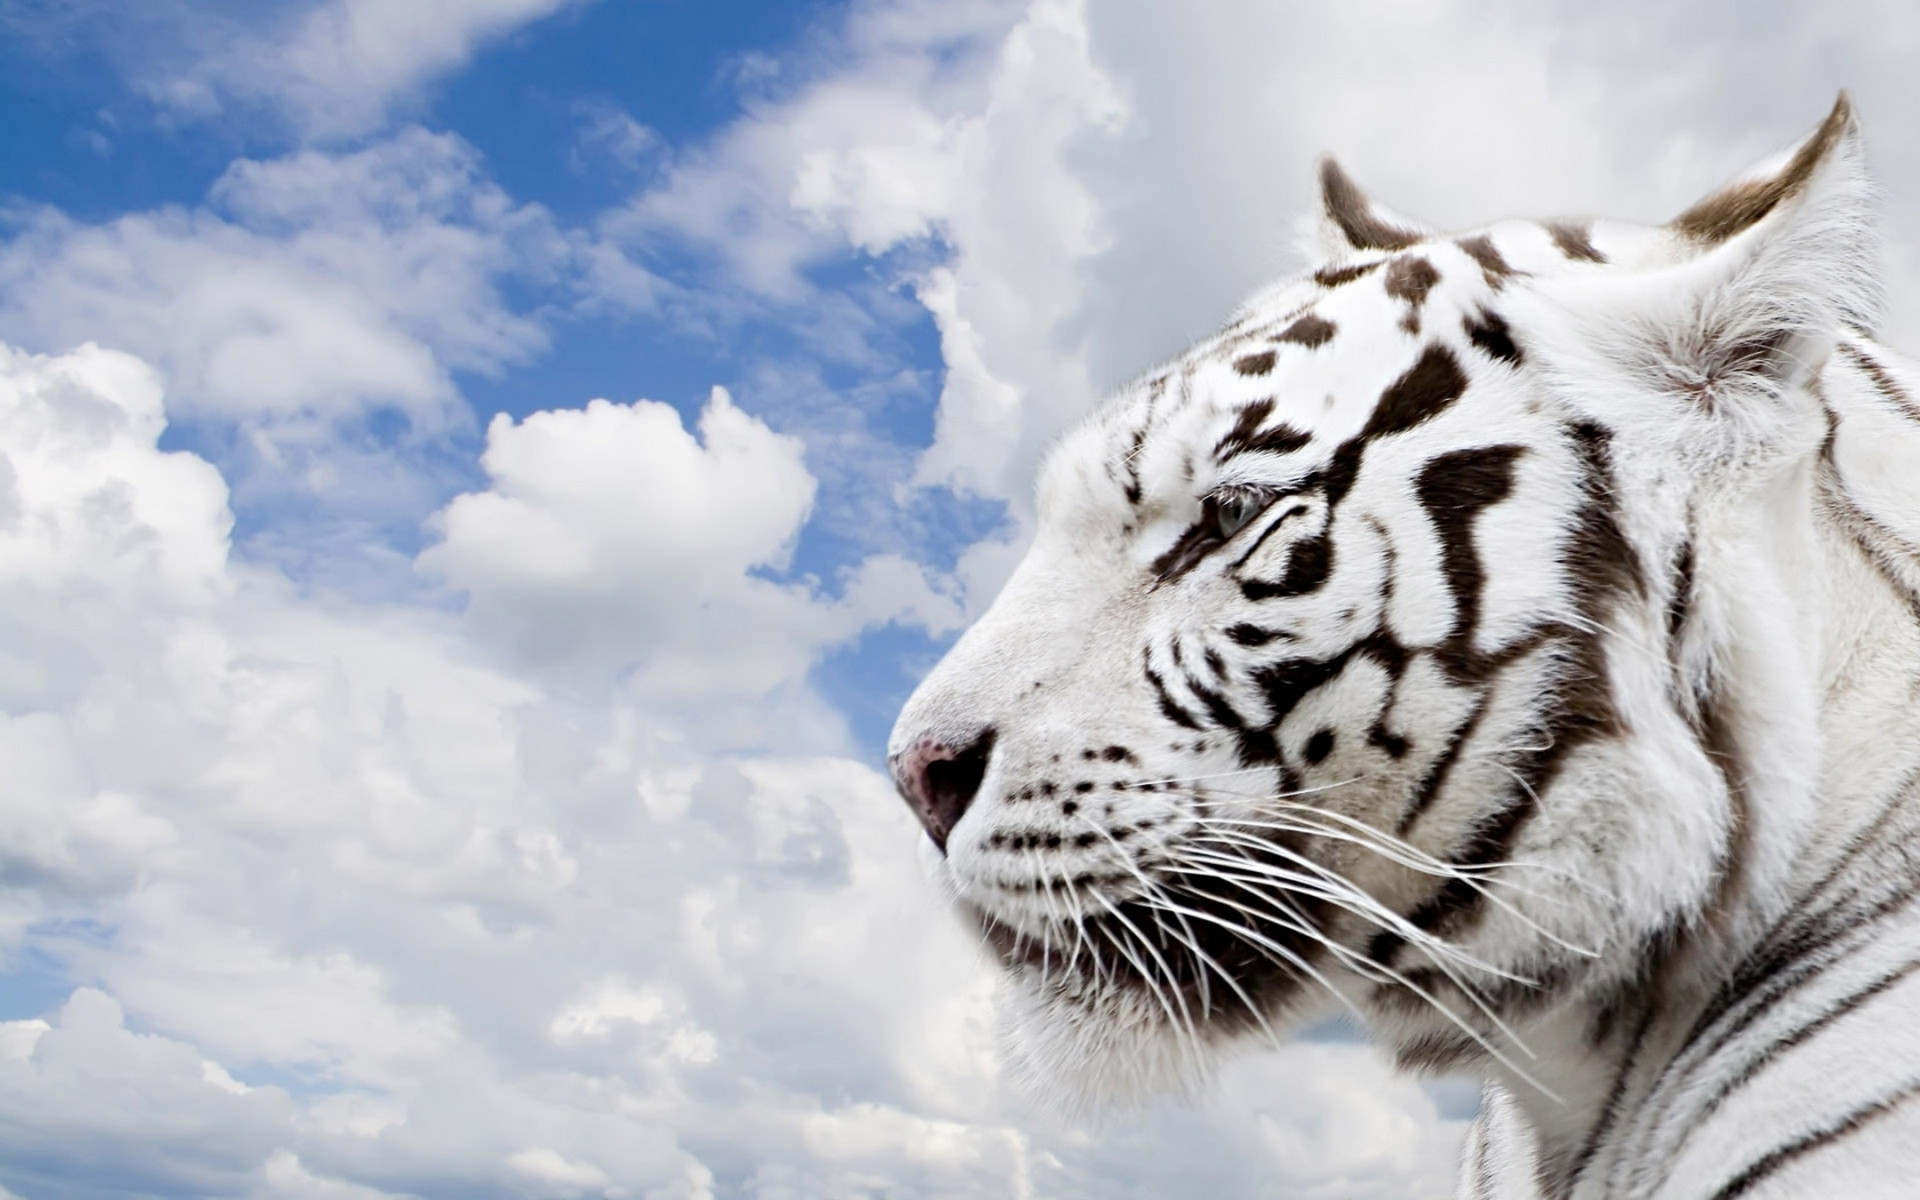 41328 download wallpaper Animals, Tigers screensavers and pictures for free